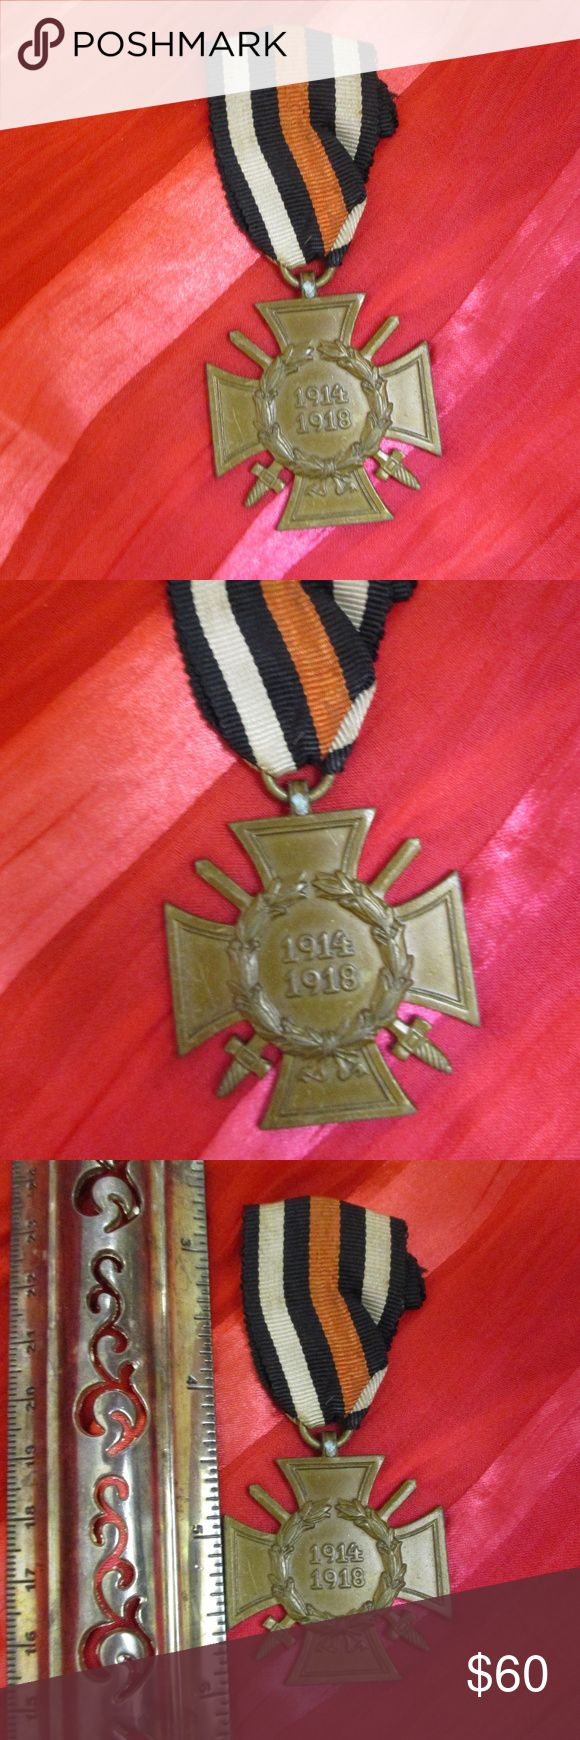 """Germany WWI Hindenburg Cross Combatant Medal The Ehrenkreuz für Frontkämpfer (Honor Cross for Combatants - or the Hindenburg Cross). WW1 German military medal War Cross of Honor 1914 - 1918,  with swords and laurel wreath. Maker marked """" A&S""""  (A&S: Assmann & Söhne, Ludenscheid). All original. The Honour Cross was worn suspended from a ribbon with black edge stripes, two white stripes, two black stripes and a red stripe in the middle between them. Excellent condition. 2 1/4"""" x 1 1/2""""  15.5g…"""